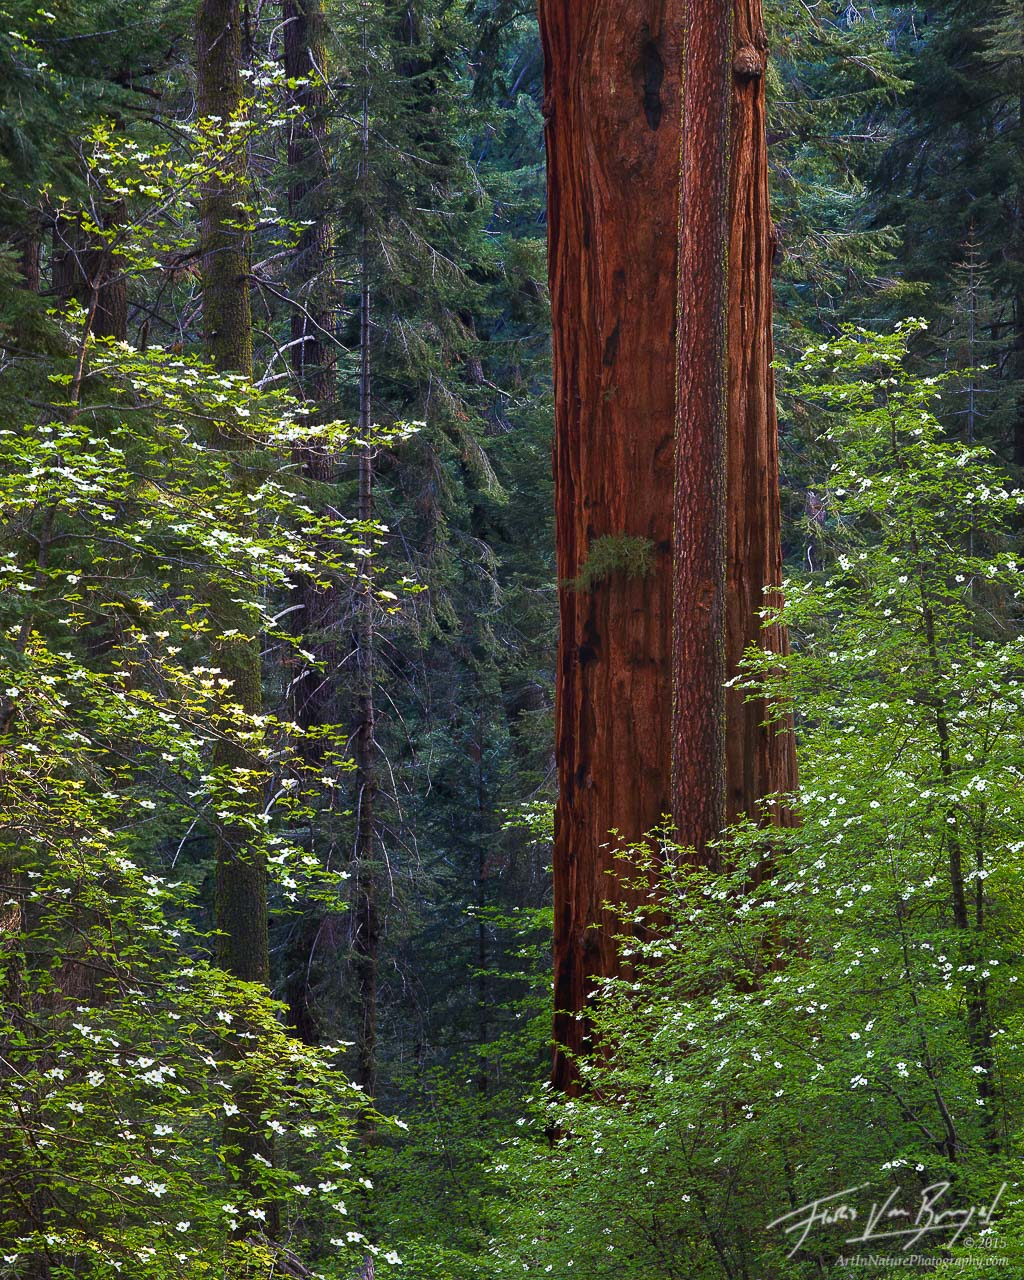 Spring Dogwoods and Sequoia, Sequoia National Park, California, flowers for giants, giant sequoia, , photo